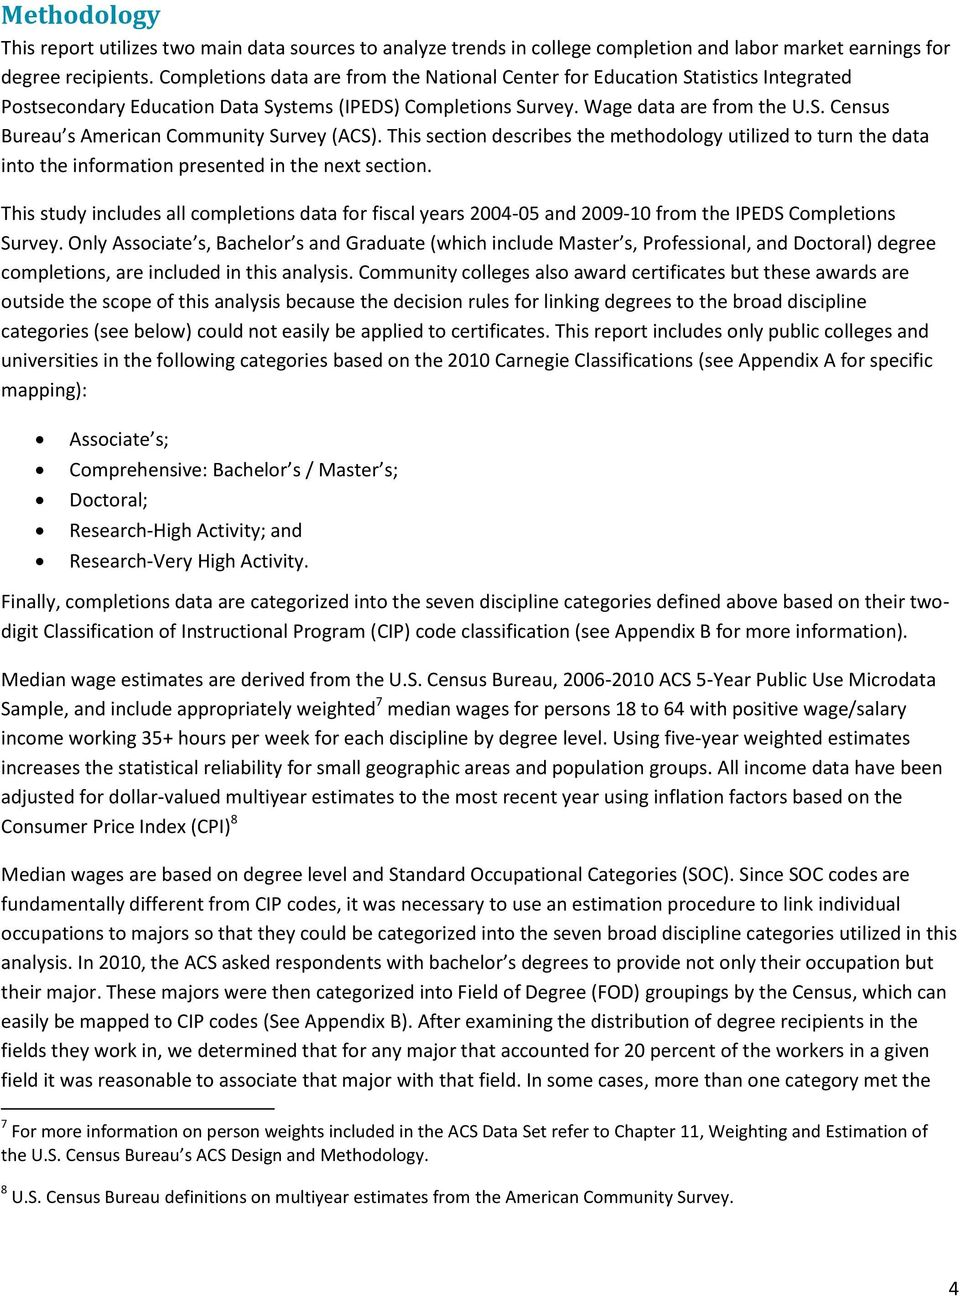 This section describes the methodology utilized to turn the data into the information presented in the next section.